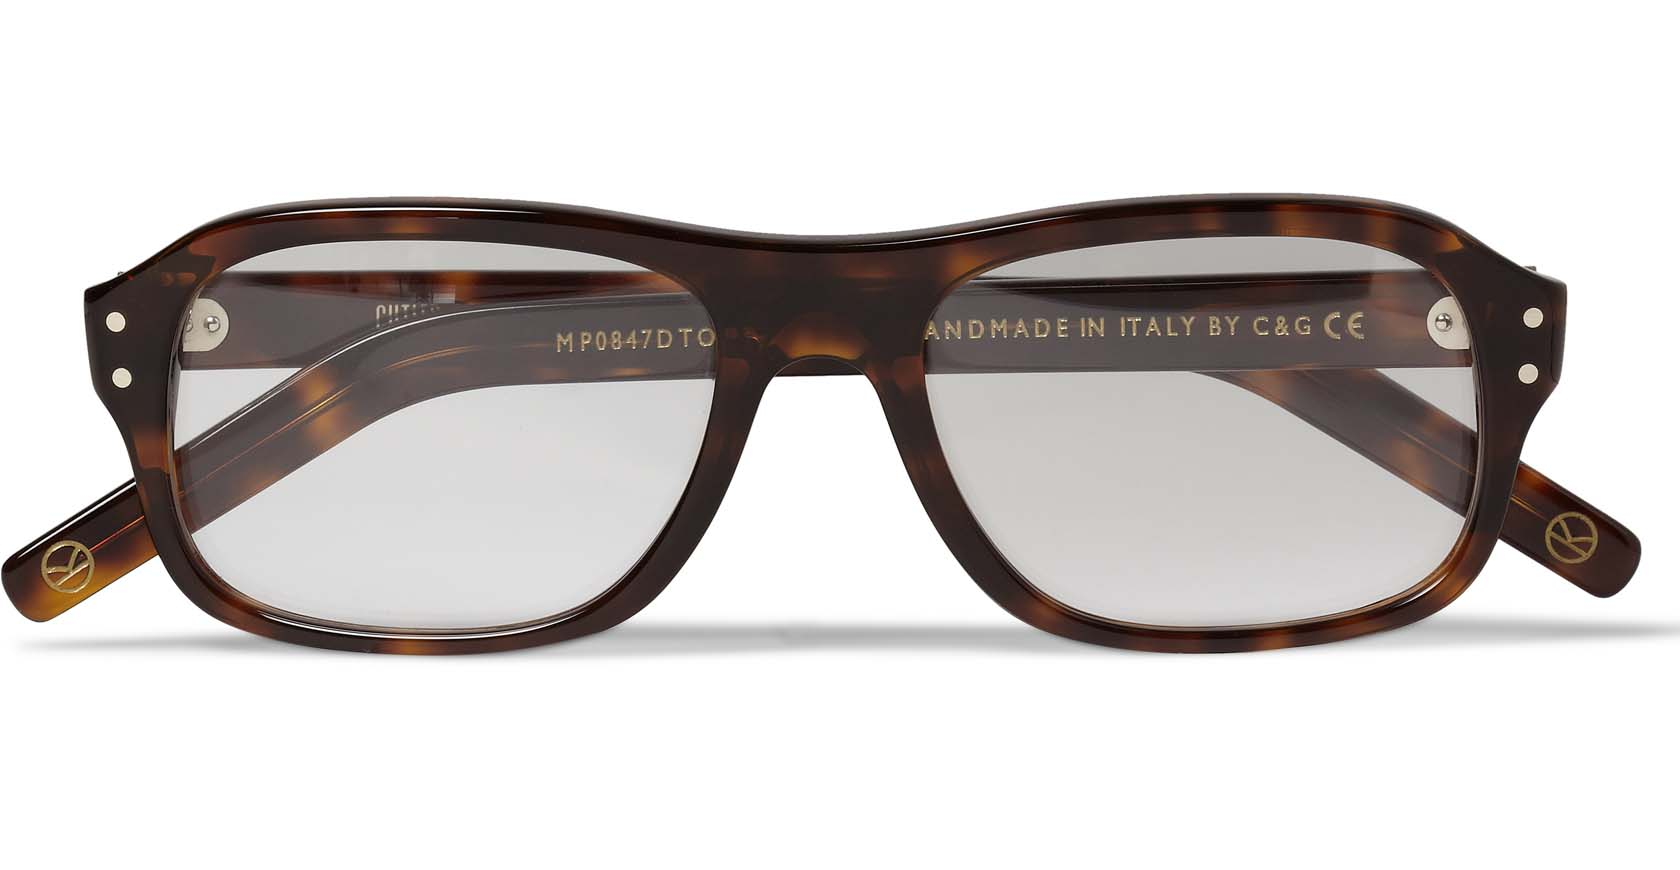 Kingsman Glasses Frame : Ask me about Eyewear! - Page 190